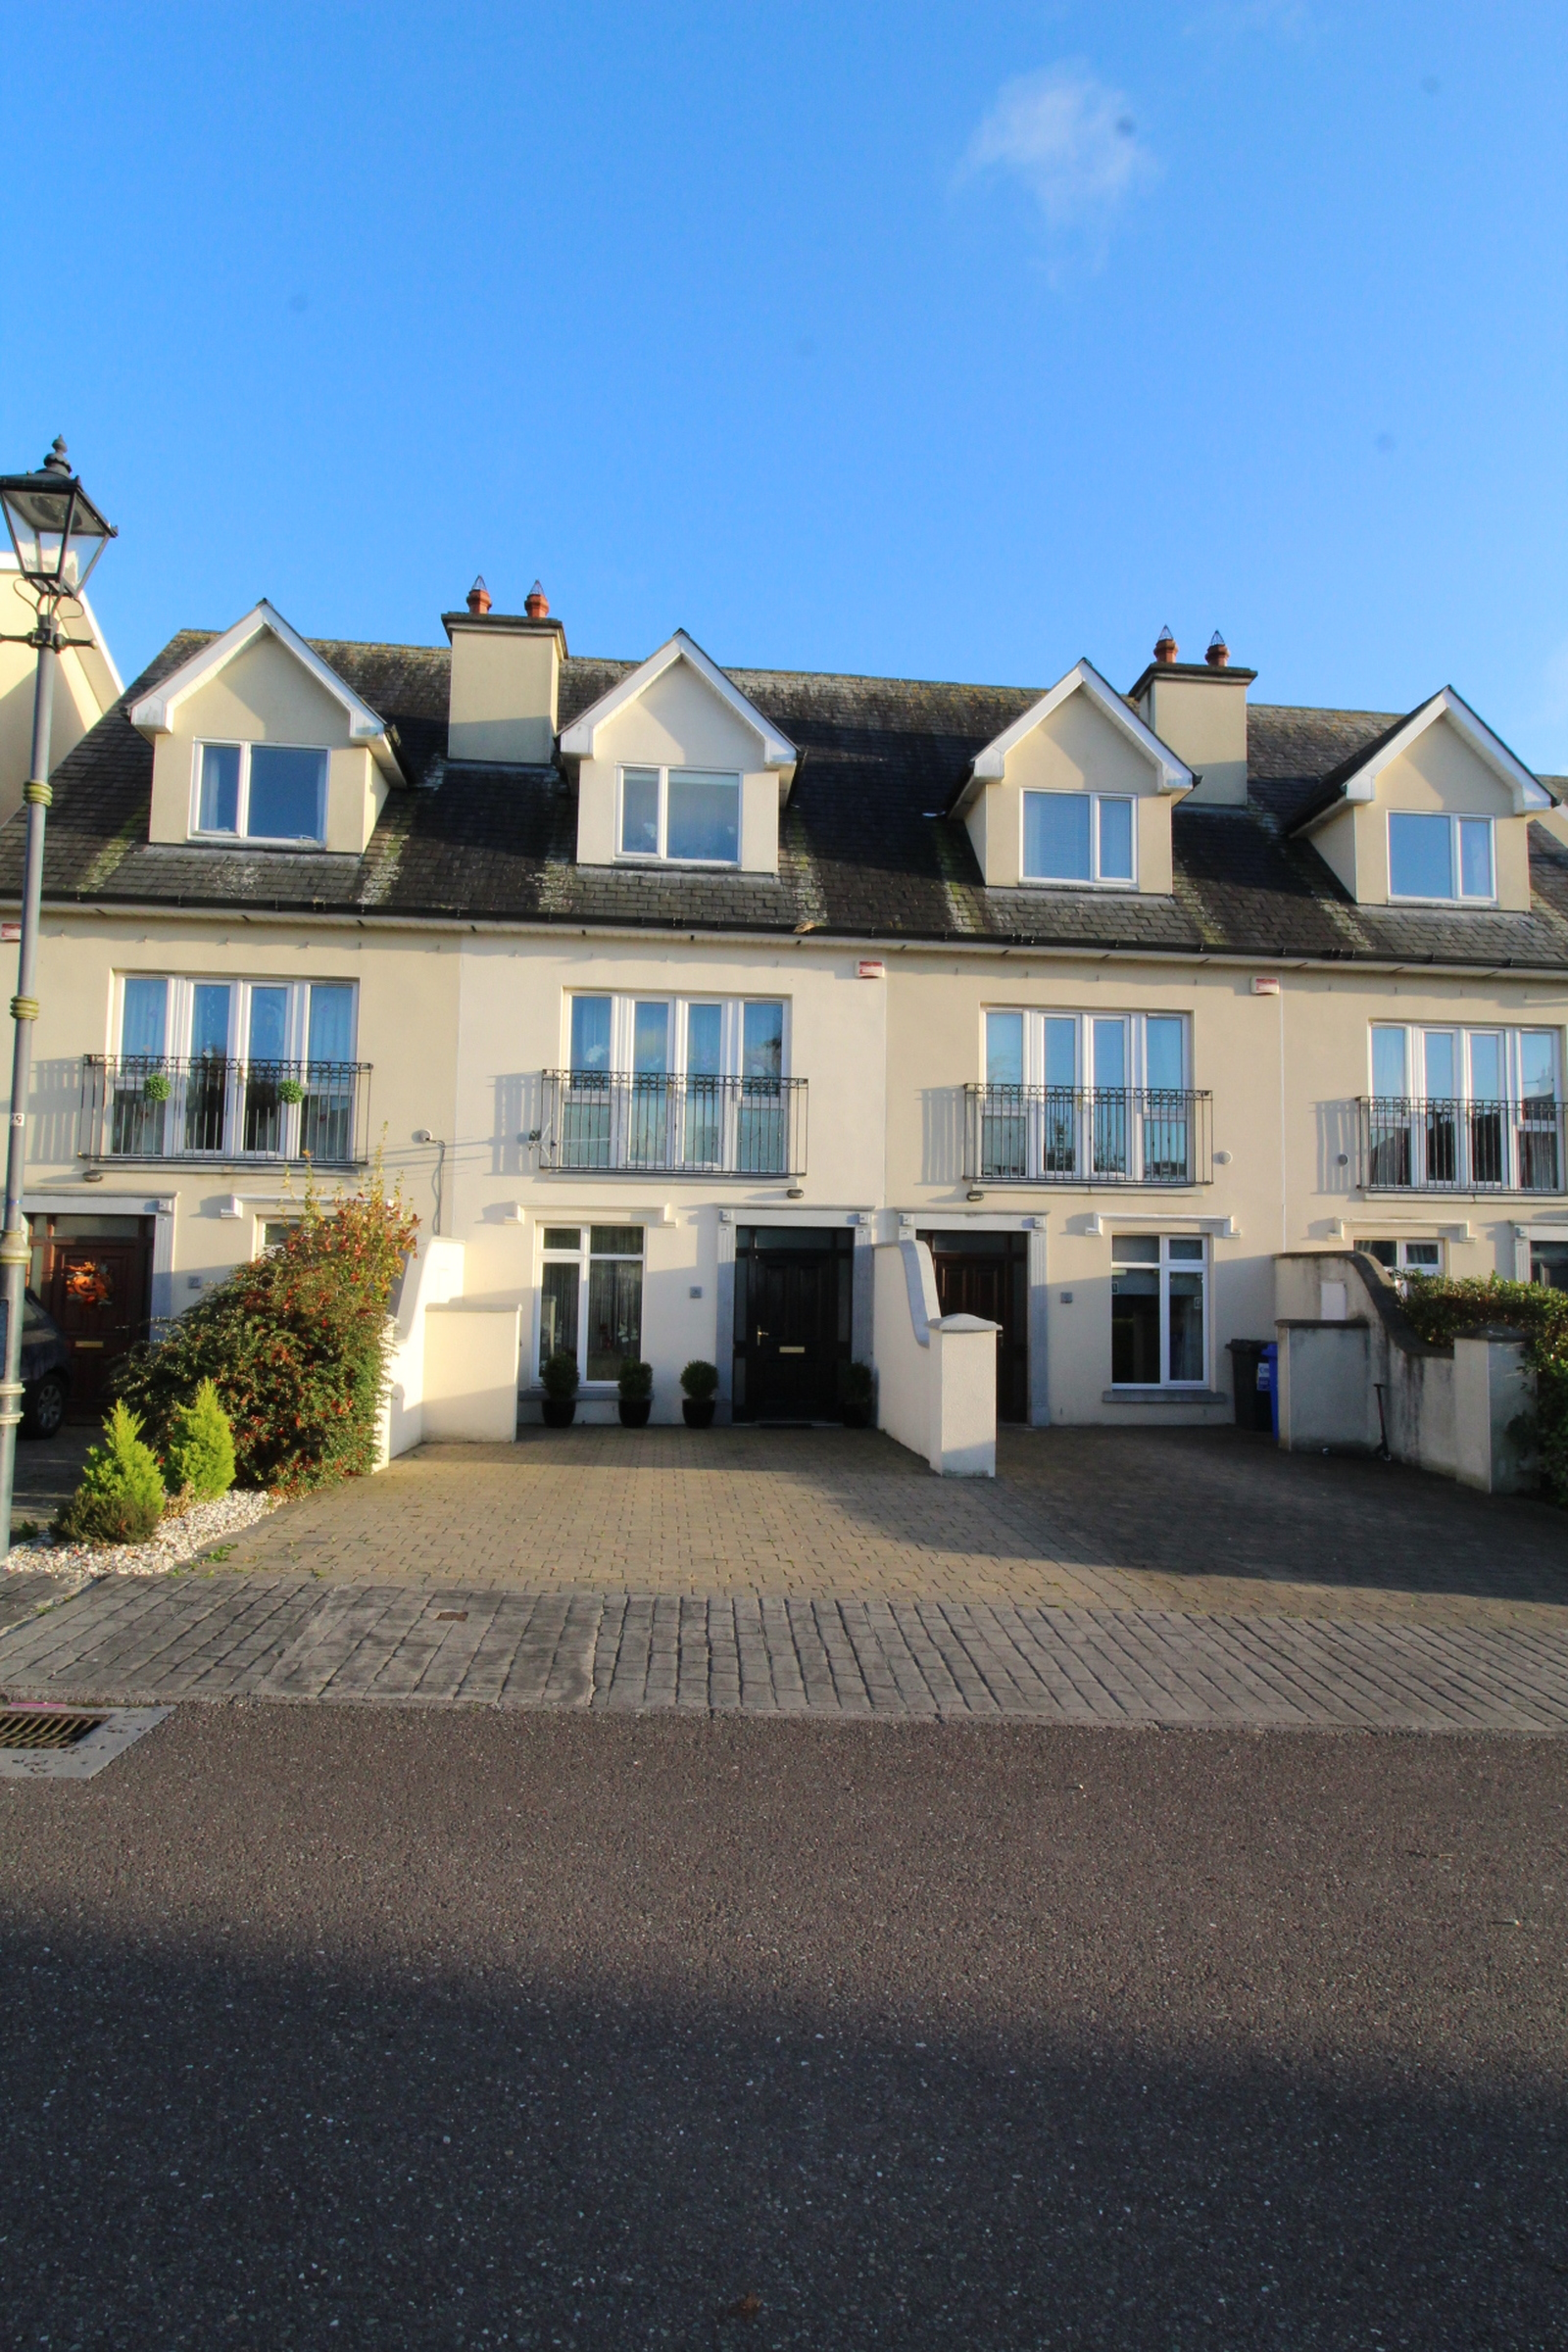 26 Kingsfort Square, Castlepark Village, Mallow, Co. Cork